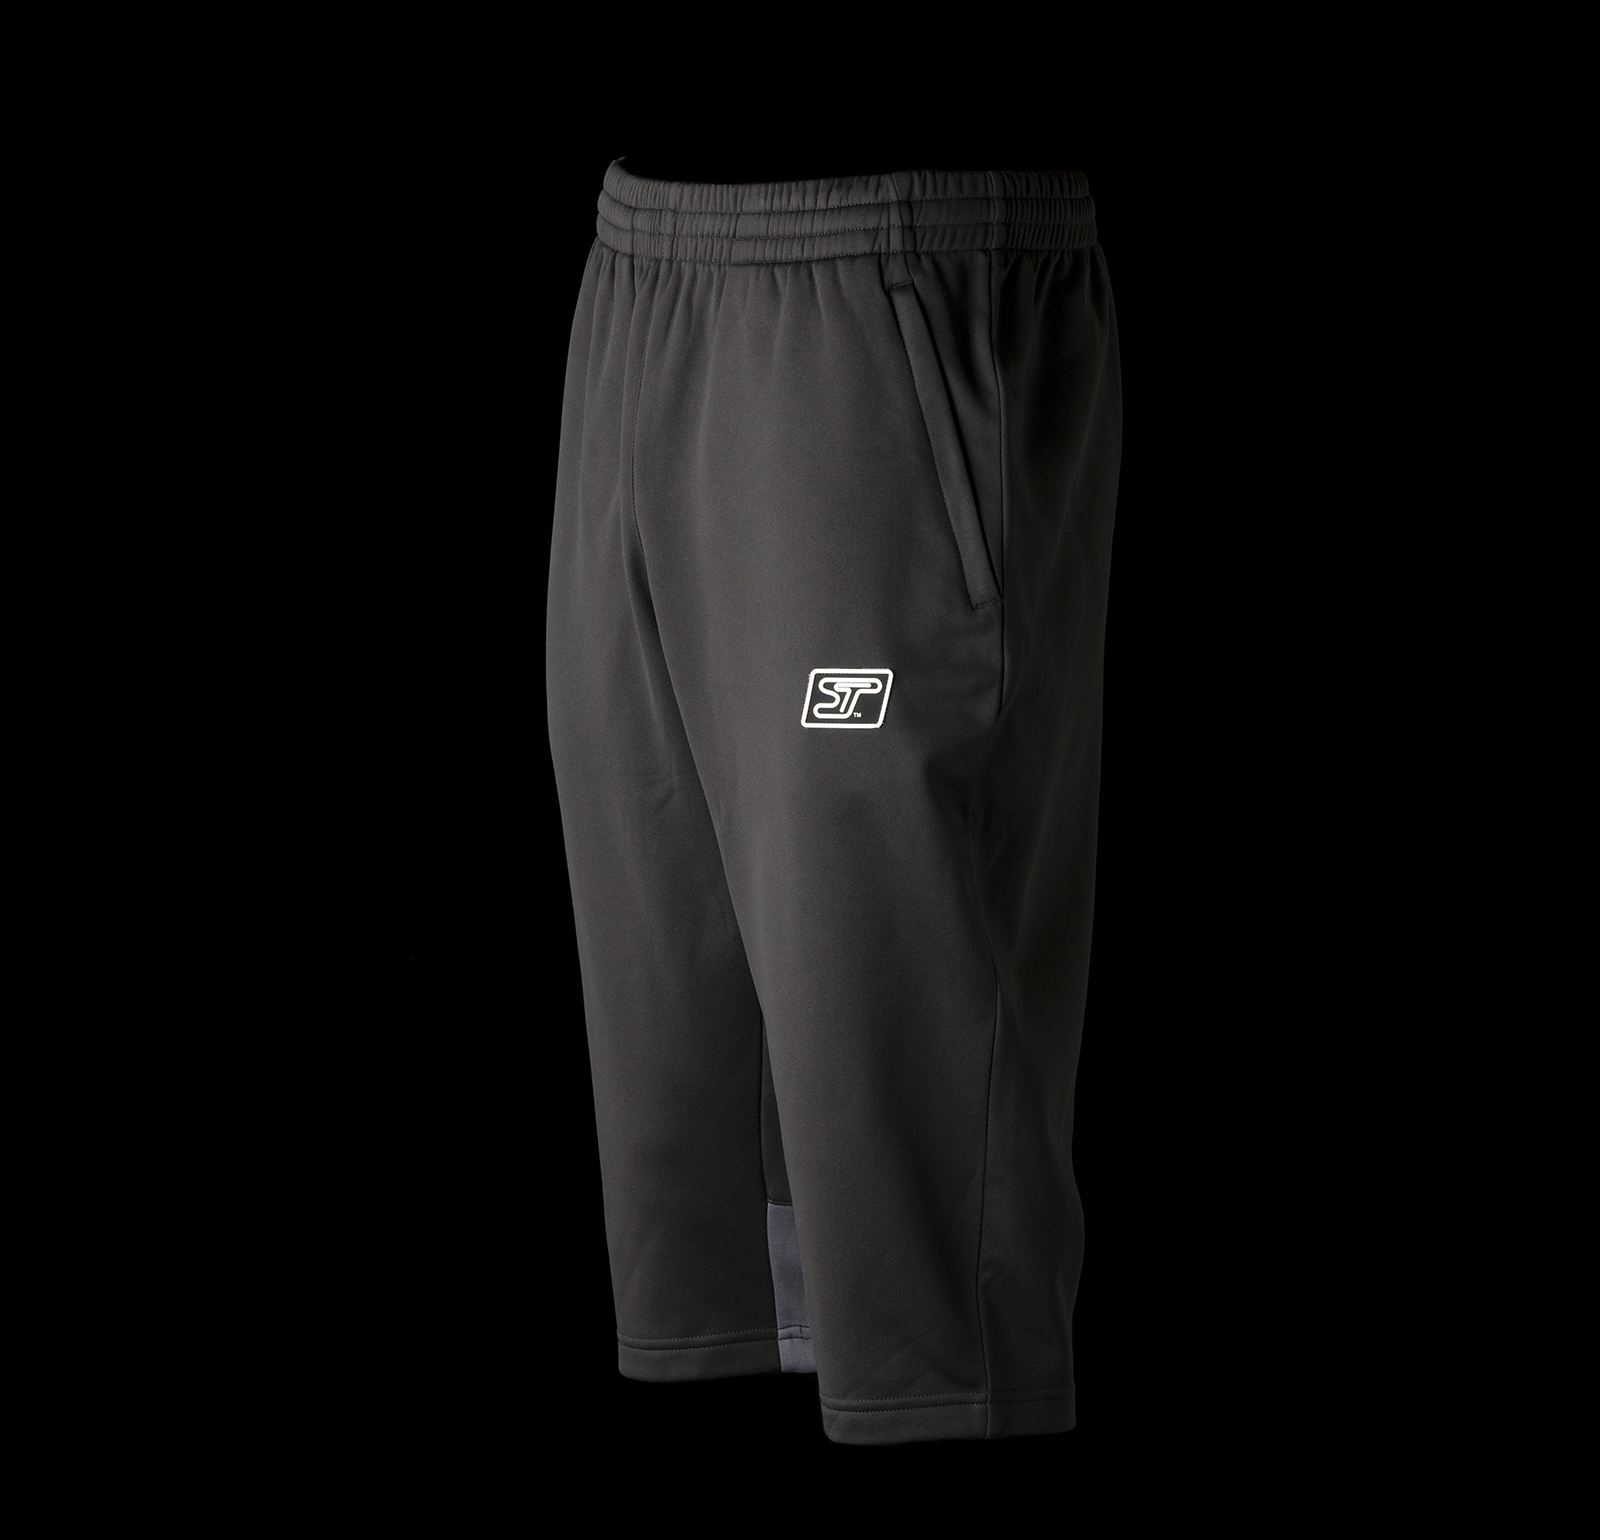 excel-3-4-pant-promo-13